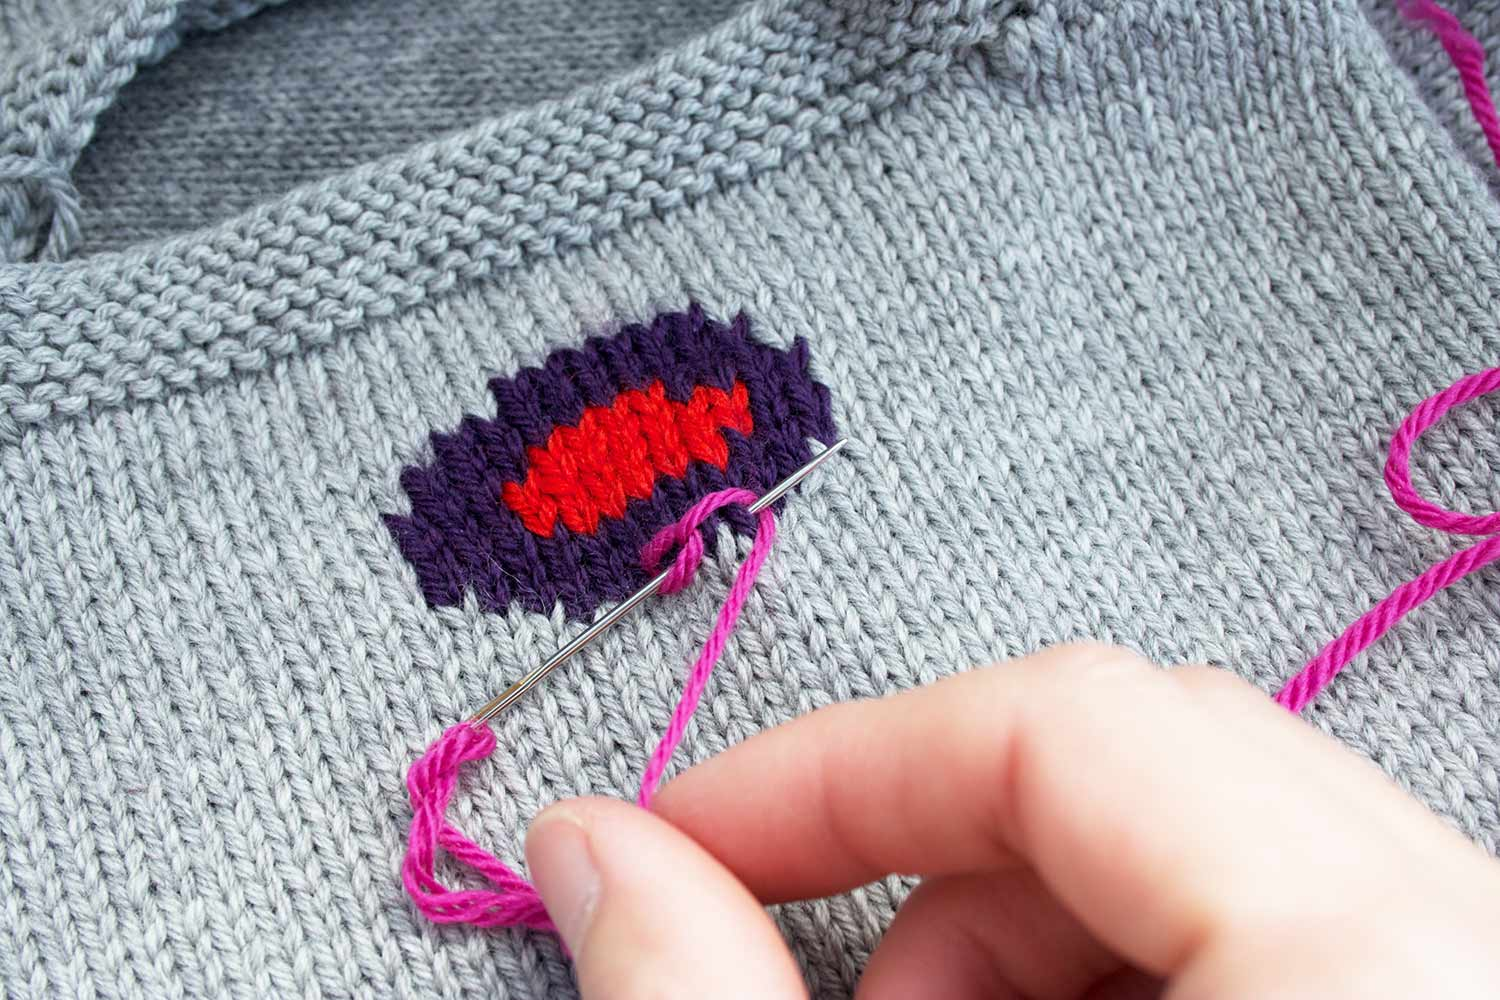 Fingers holding yarn looped under tip of needle while needle is still inserted in knitted fabric.